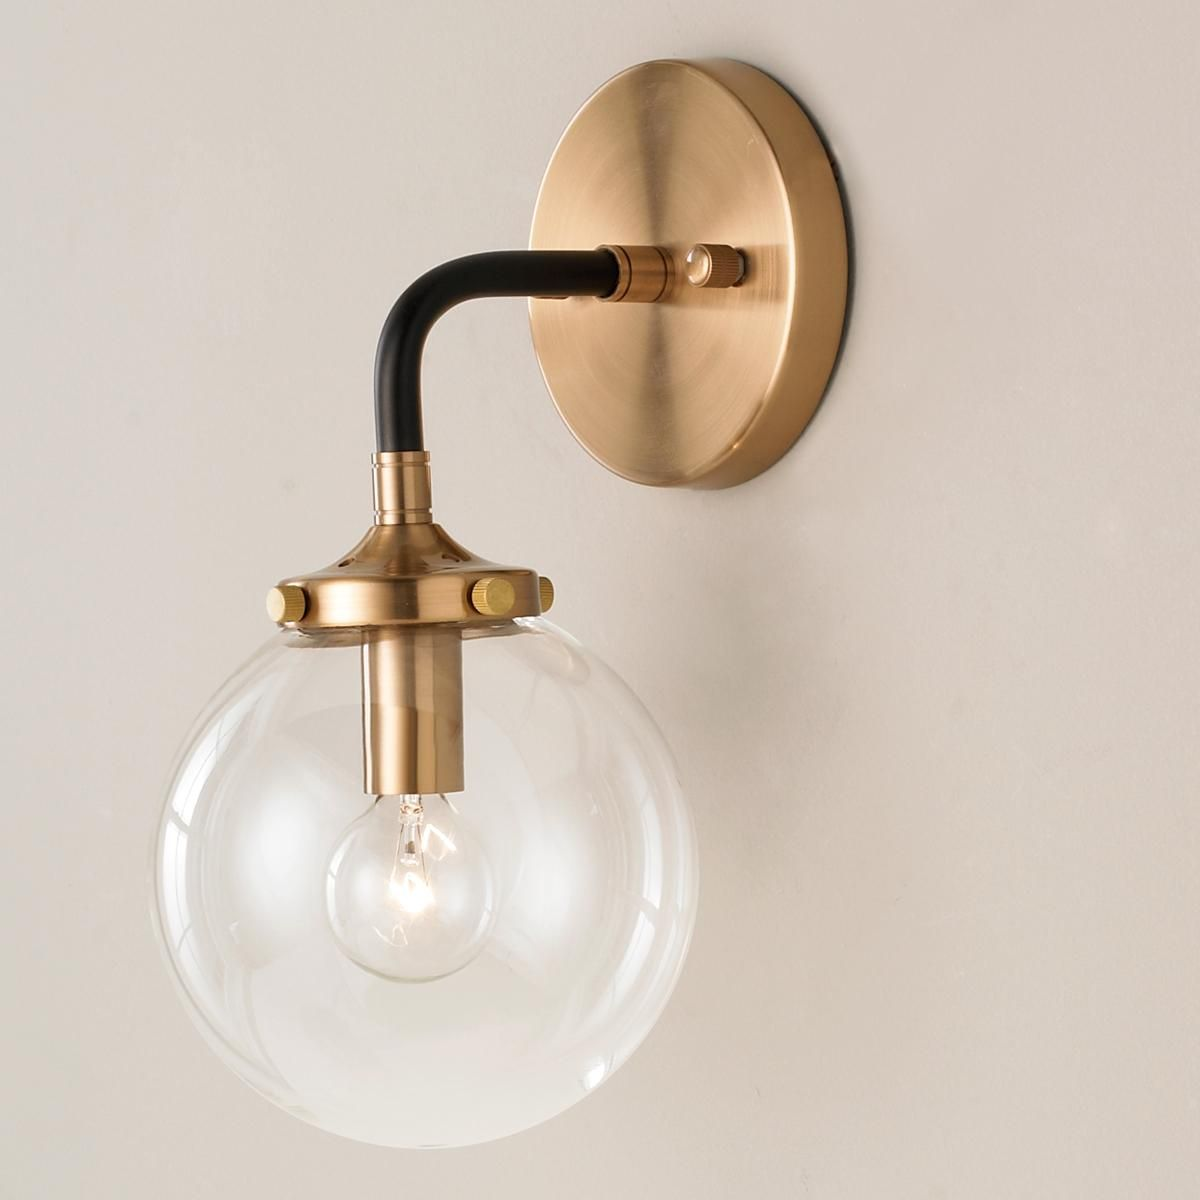 Mixed Metal Globe Sconce Globe Sconce Modern Sconces Mid